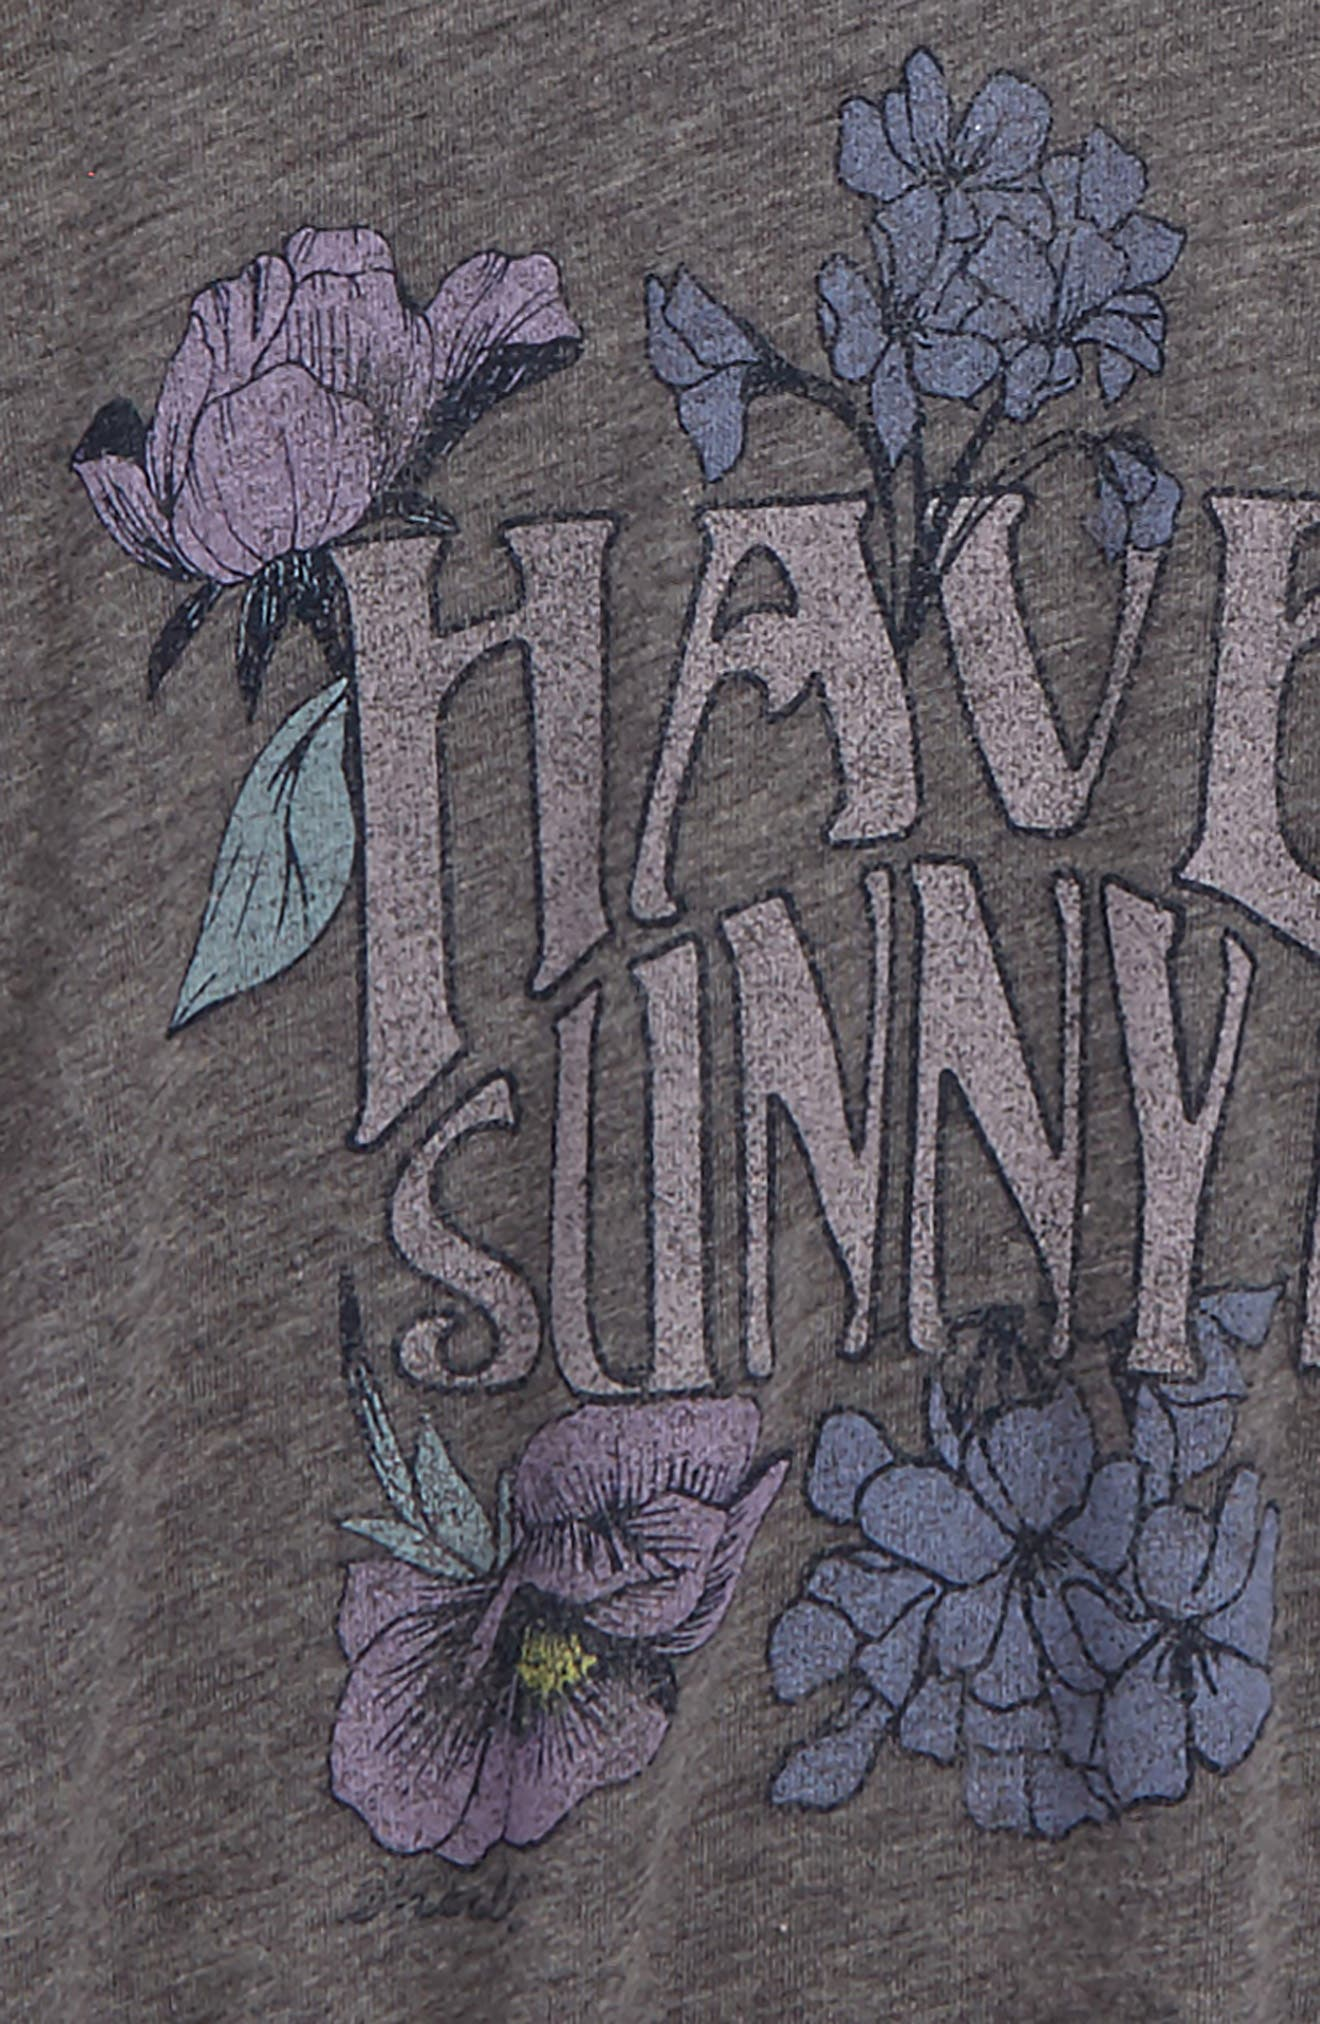 Sunny Day Graphic Tee,                             Alternate thumbnail 3, color,                             Heather Grey - Hgr